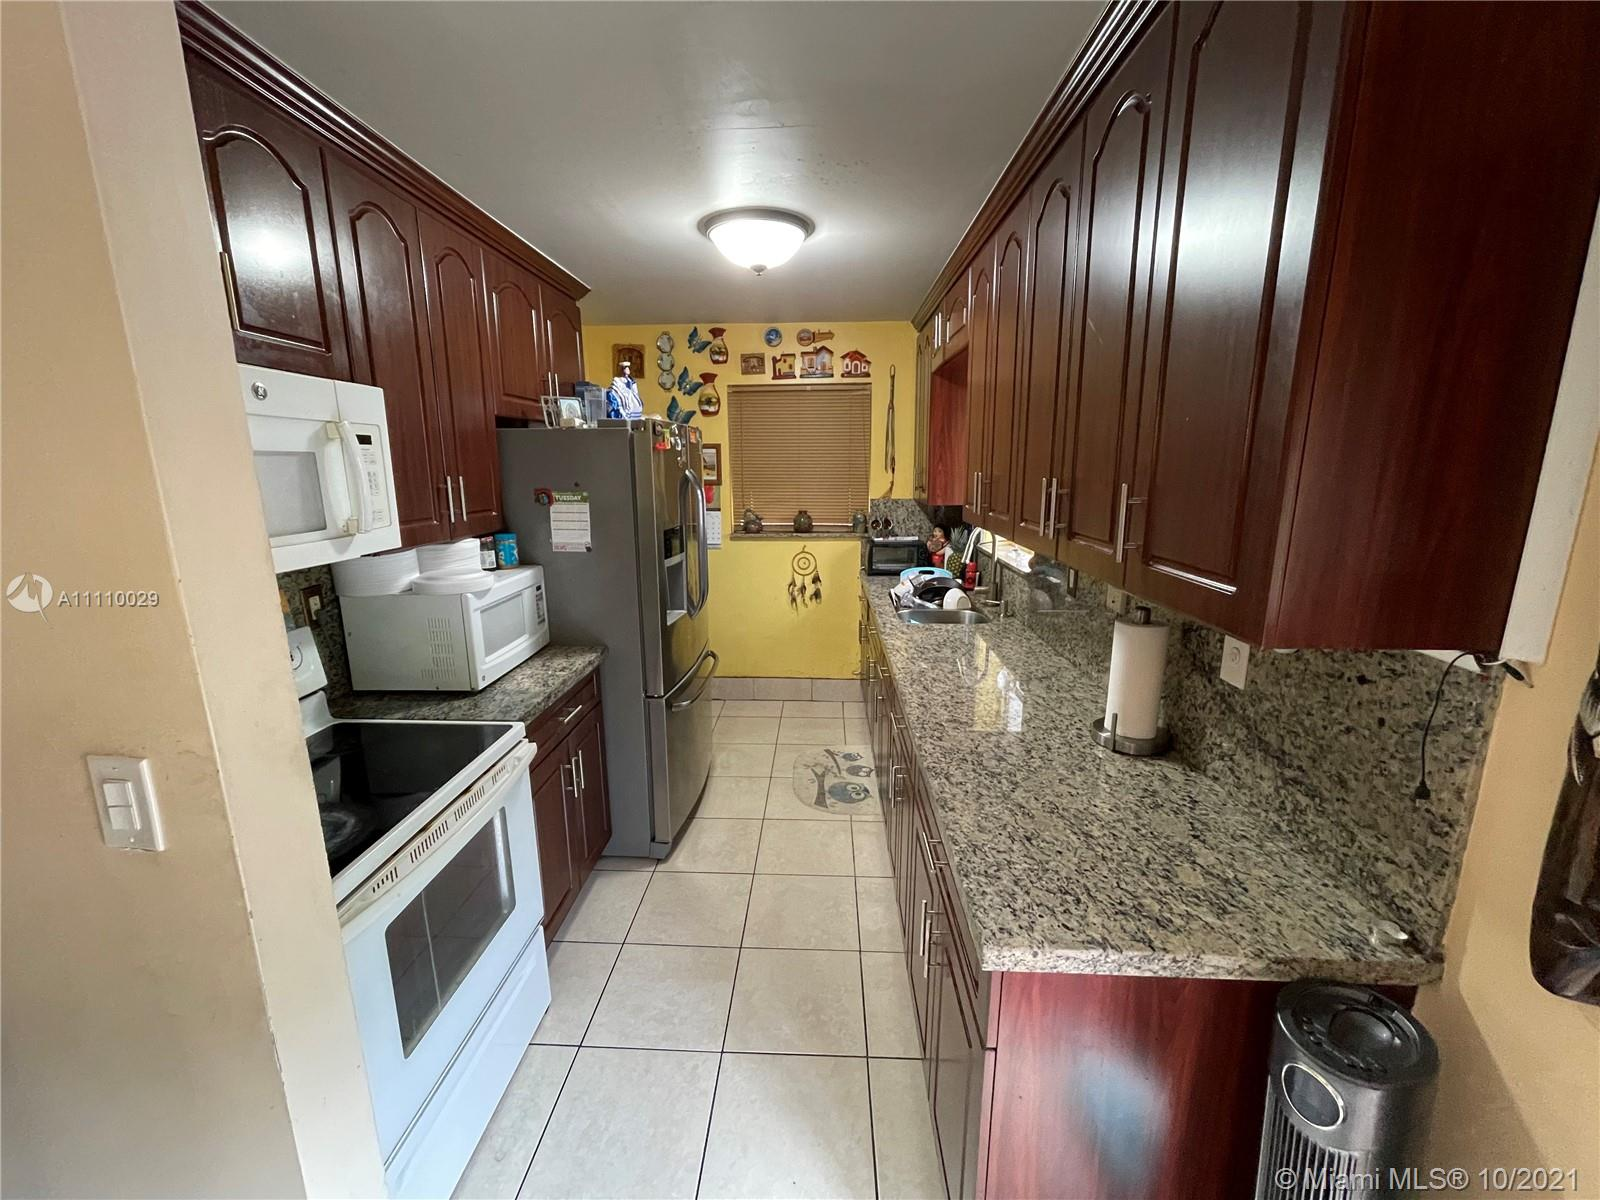 Single Family Home,For Sale,3720 NW 166th St, Miami Gardens, Florida 33054,Brickell,realty,broker,condos near me